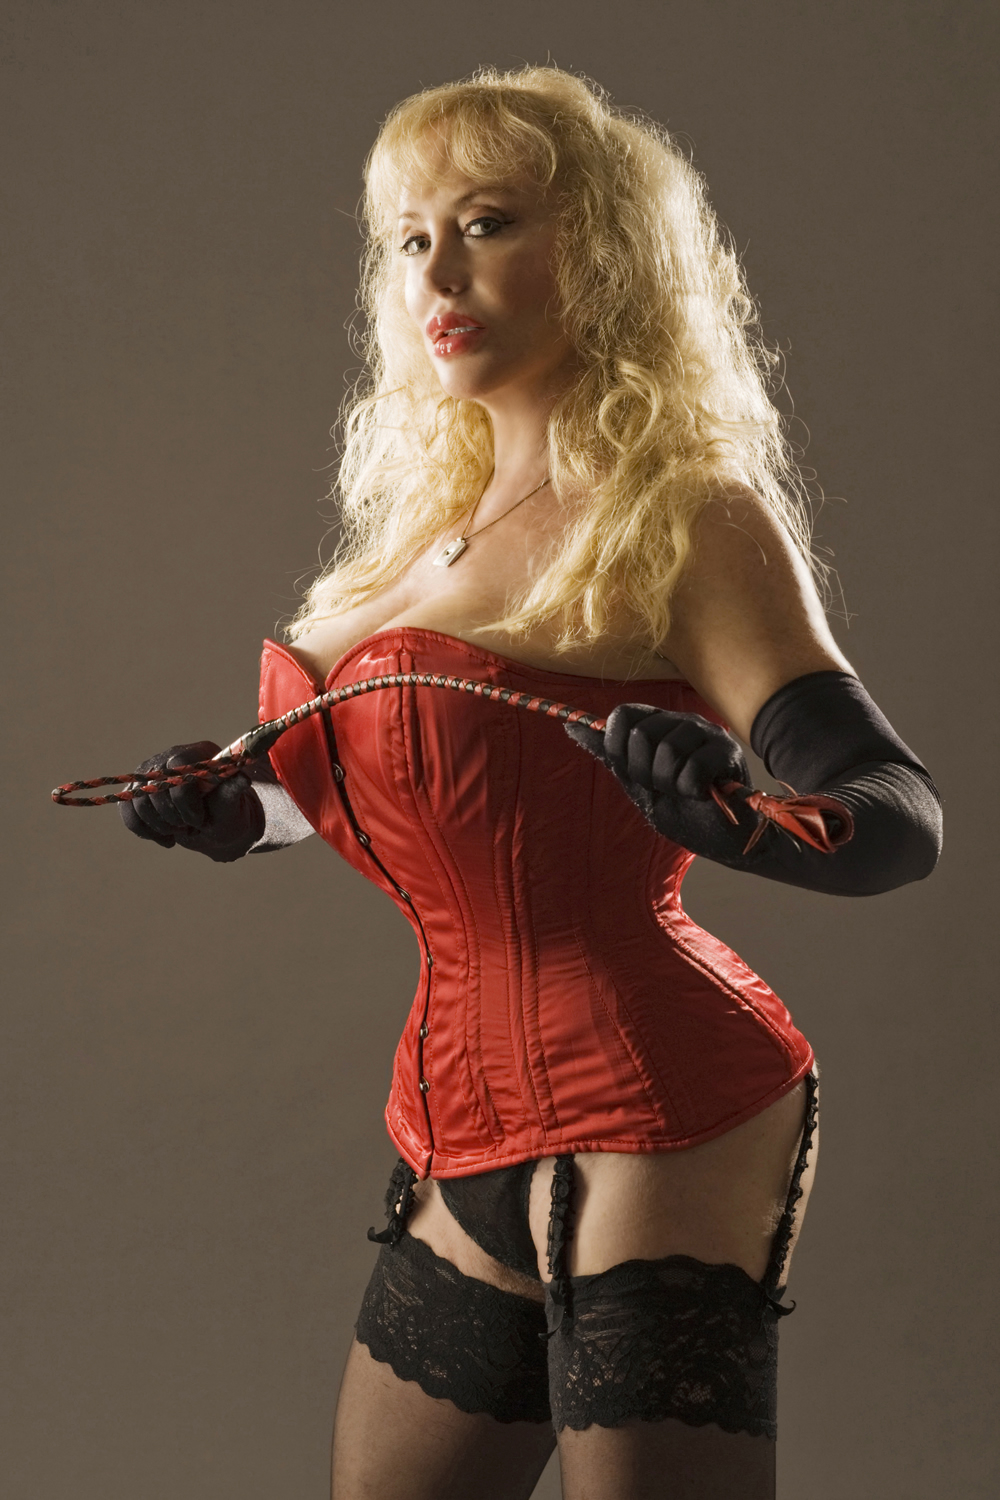 About Mistress Tanya of London